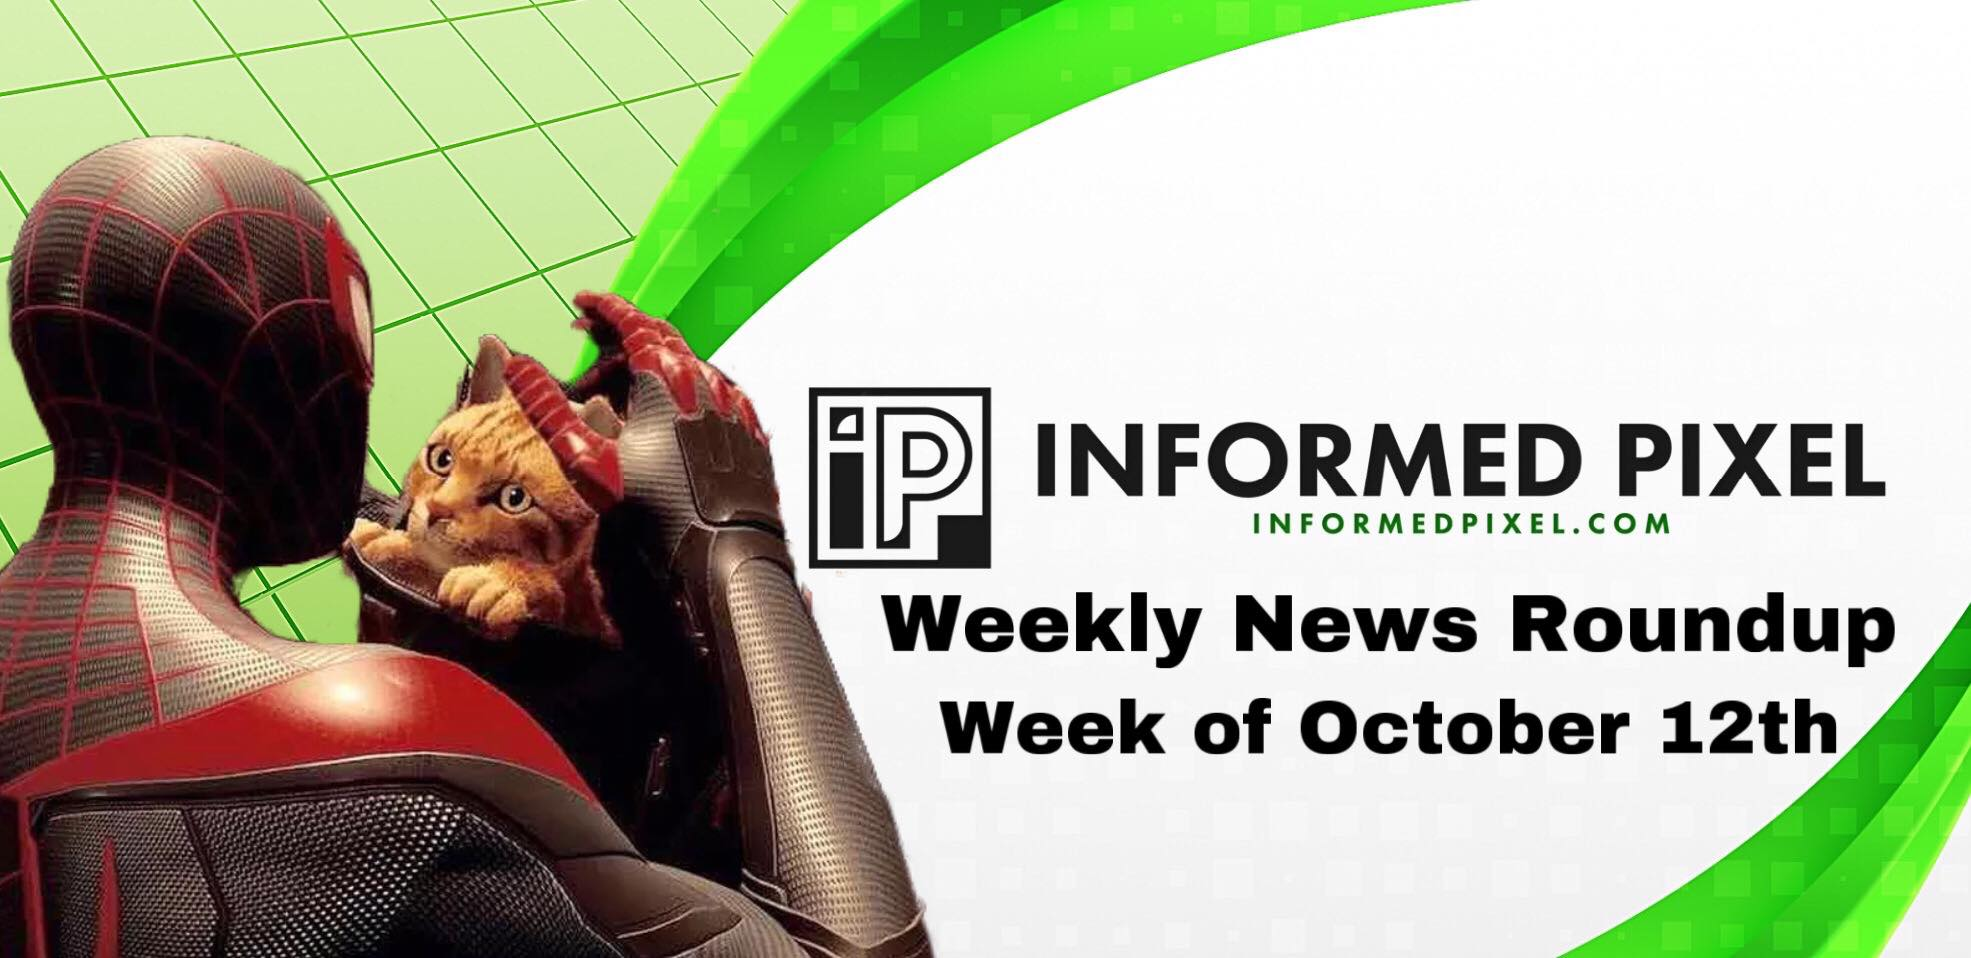 Weekly News Roundup – Week of October 12th